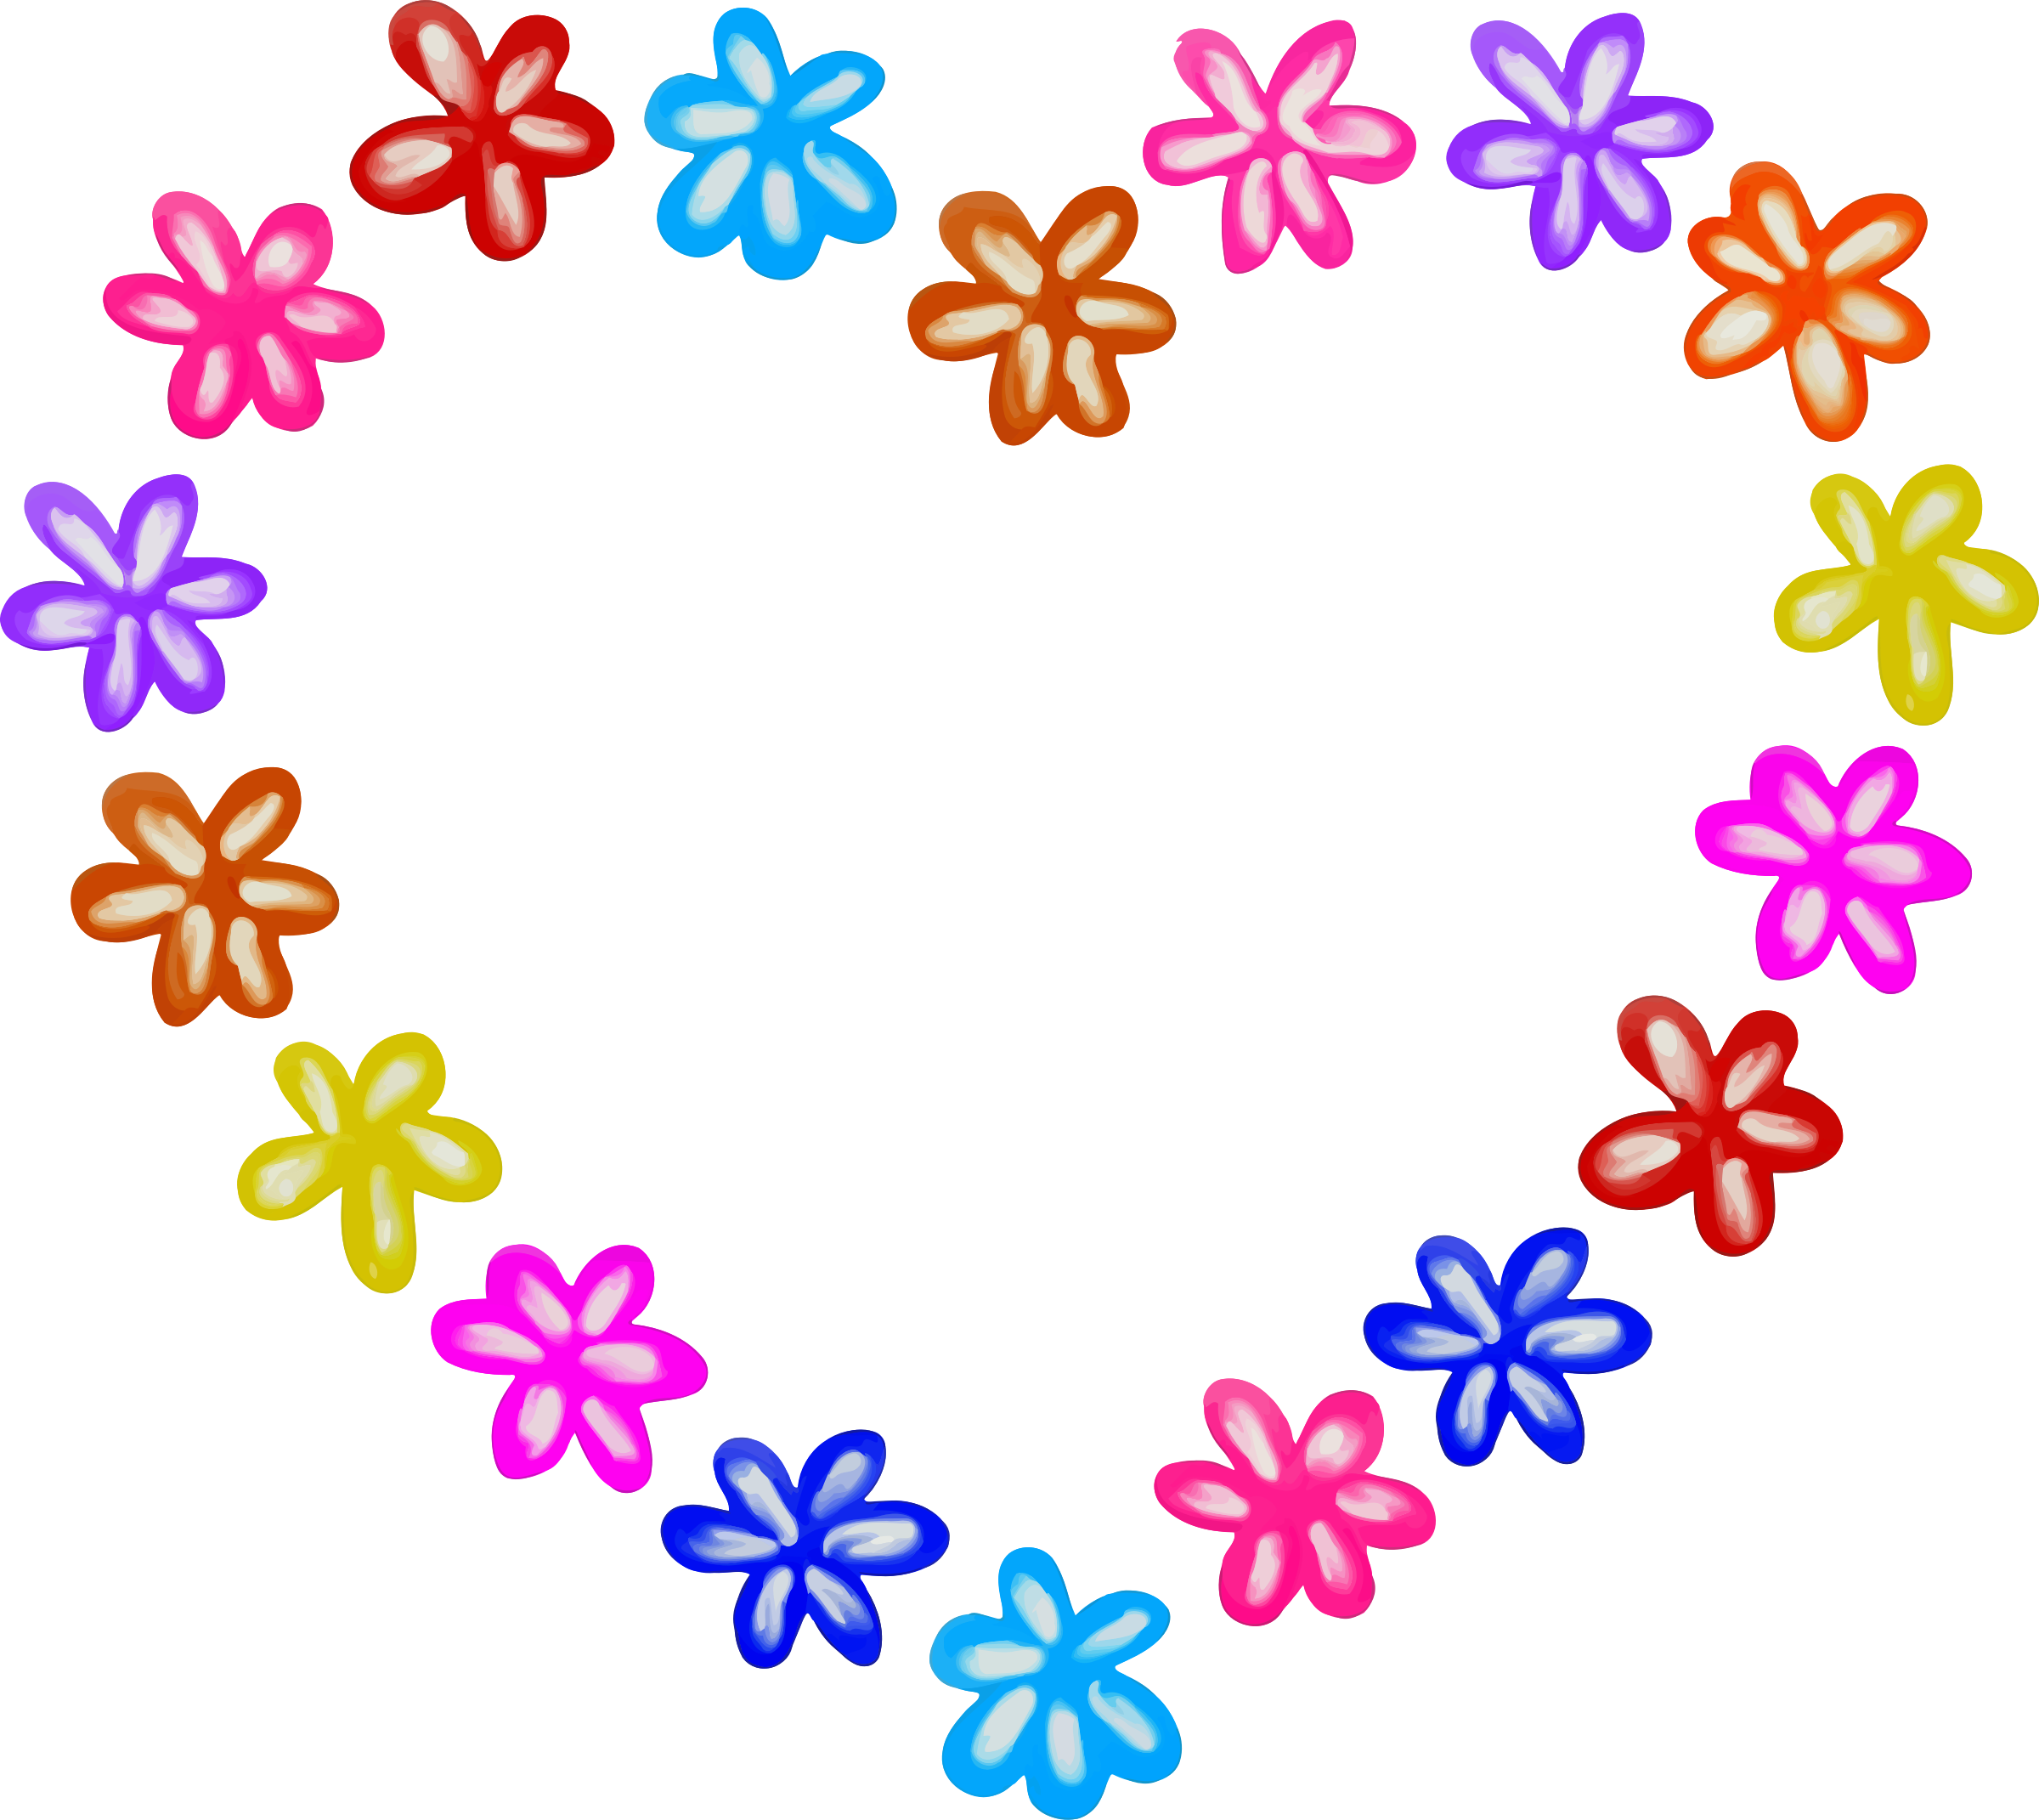 Bleeding heart flower clipart png royalty free stock Heart Flower Clipart at GetDrawings.com | Free for personal use ... png royalty free stock